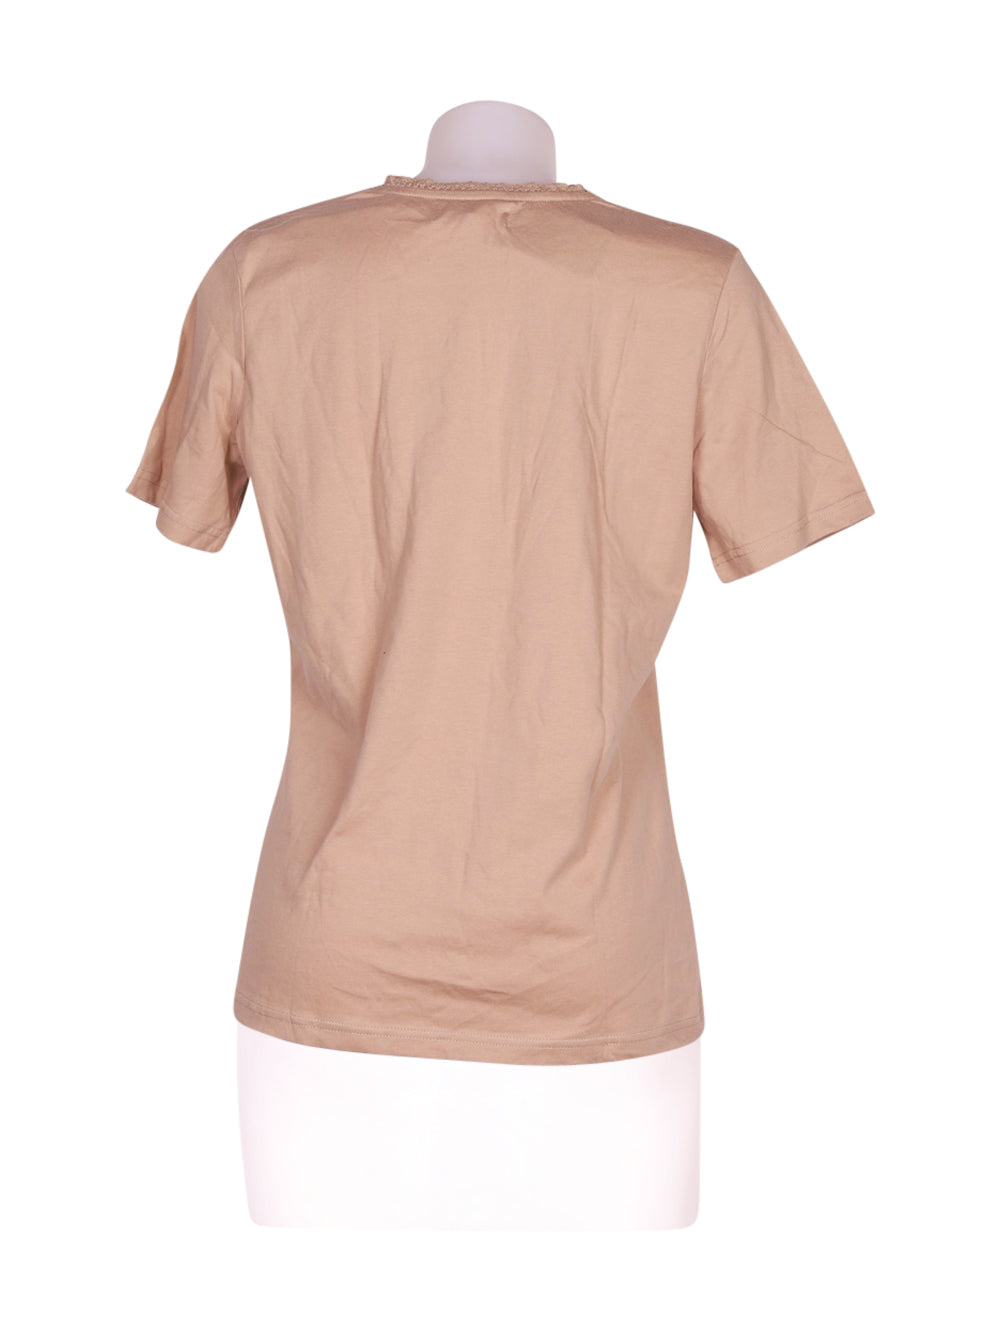 Back photo of Unworn celaia Beige Woman's t-shirt - size 10/M